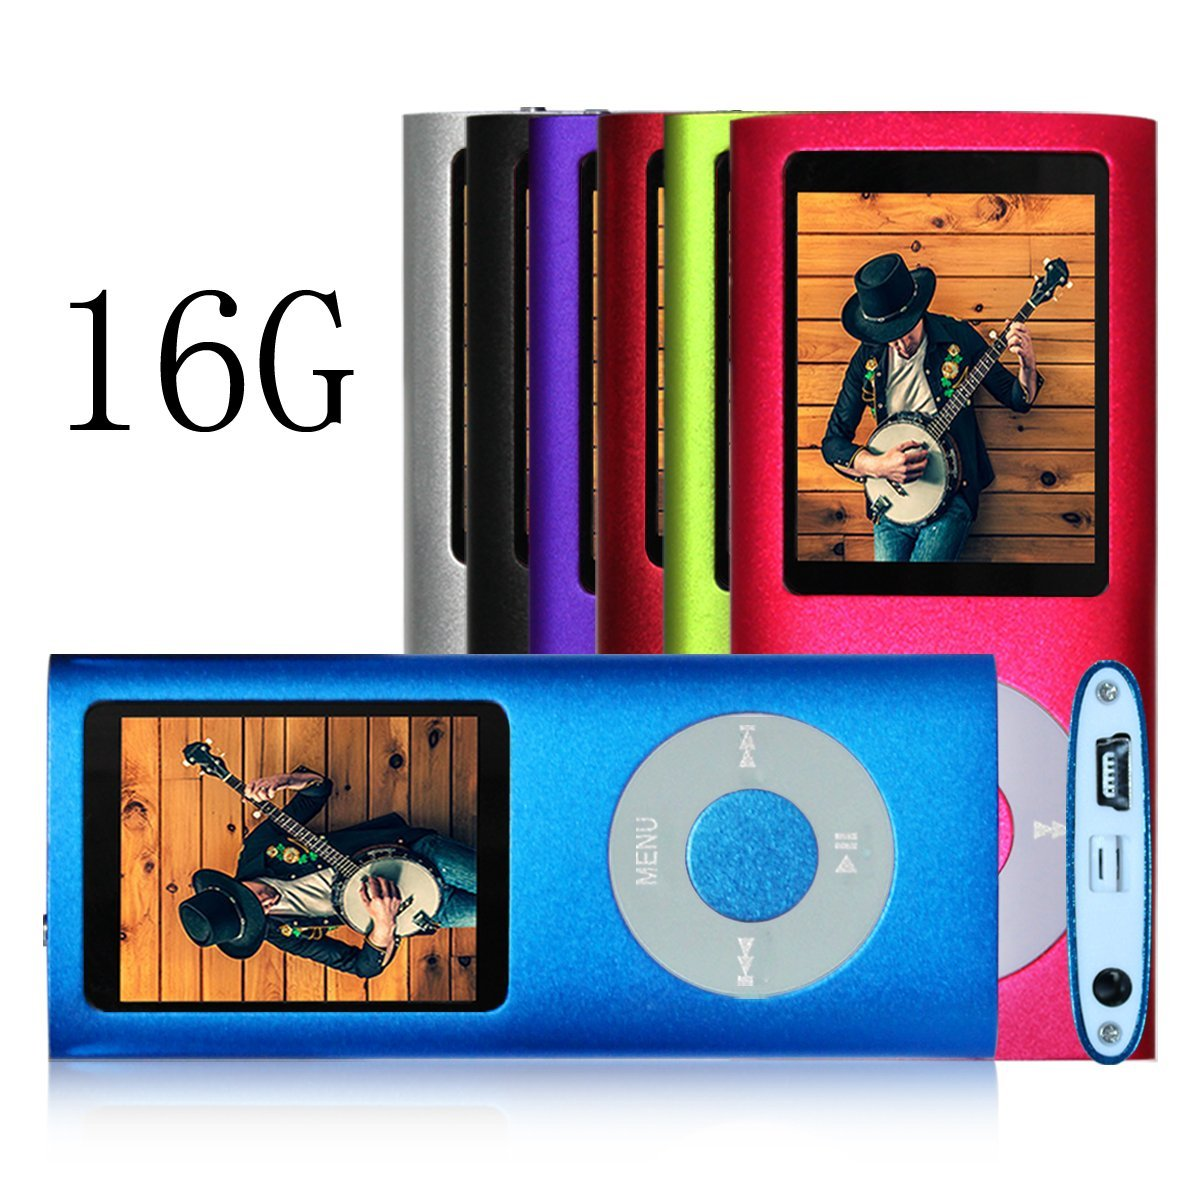 G.G.Martinsen 16 GB MINI-USB-PORT Portable MP3/MP4 Player with Multi-lingual OS , Multi-Functional MP3 Player / MP4 Player with Mini USB Port, Voice Recorder , Media Player , E-book reader in Blue